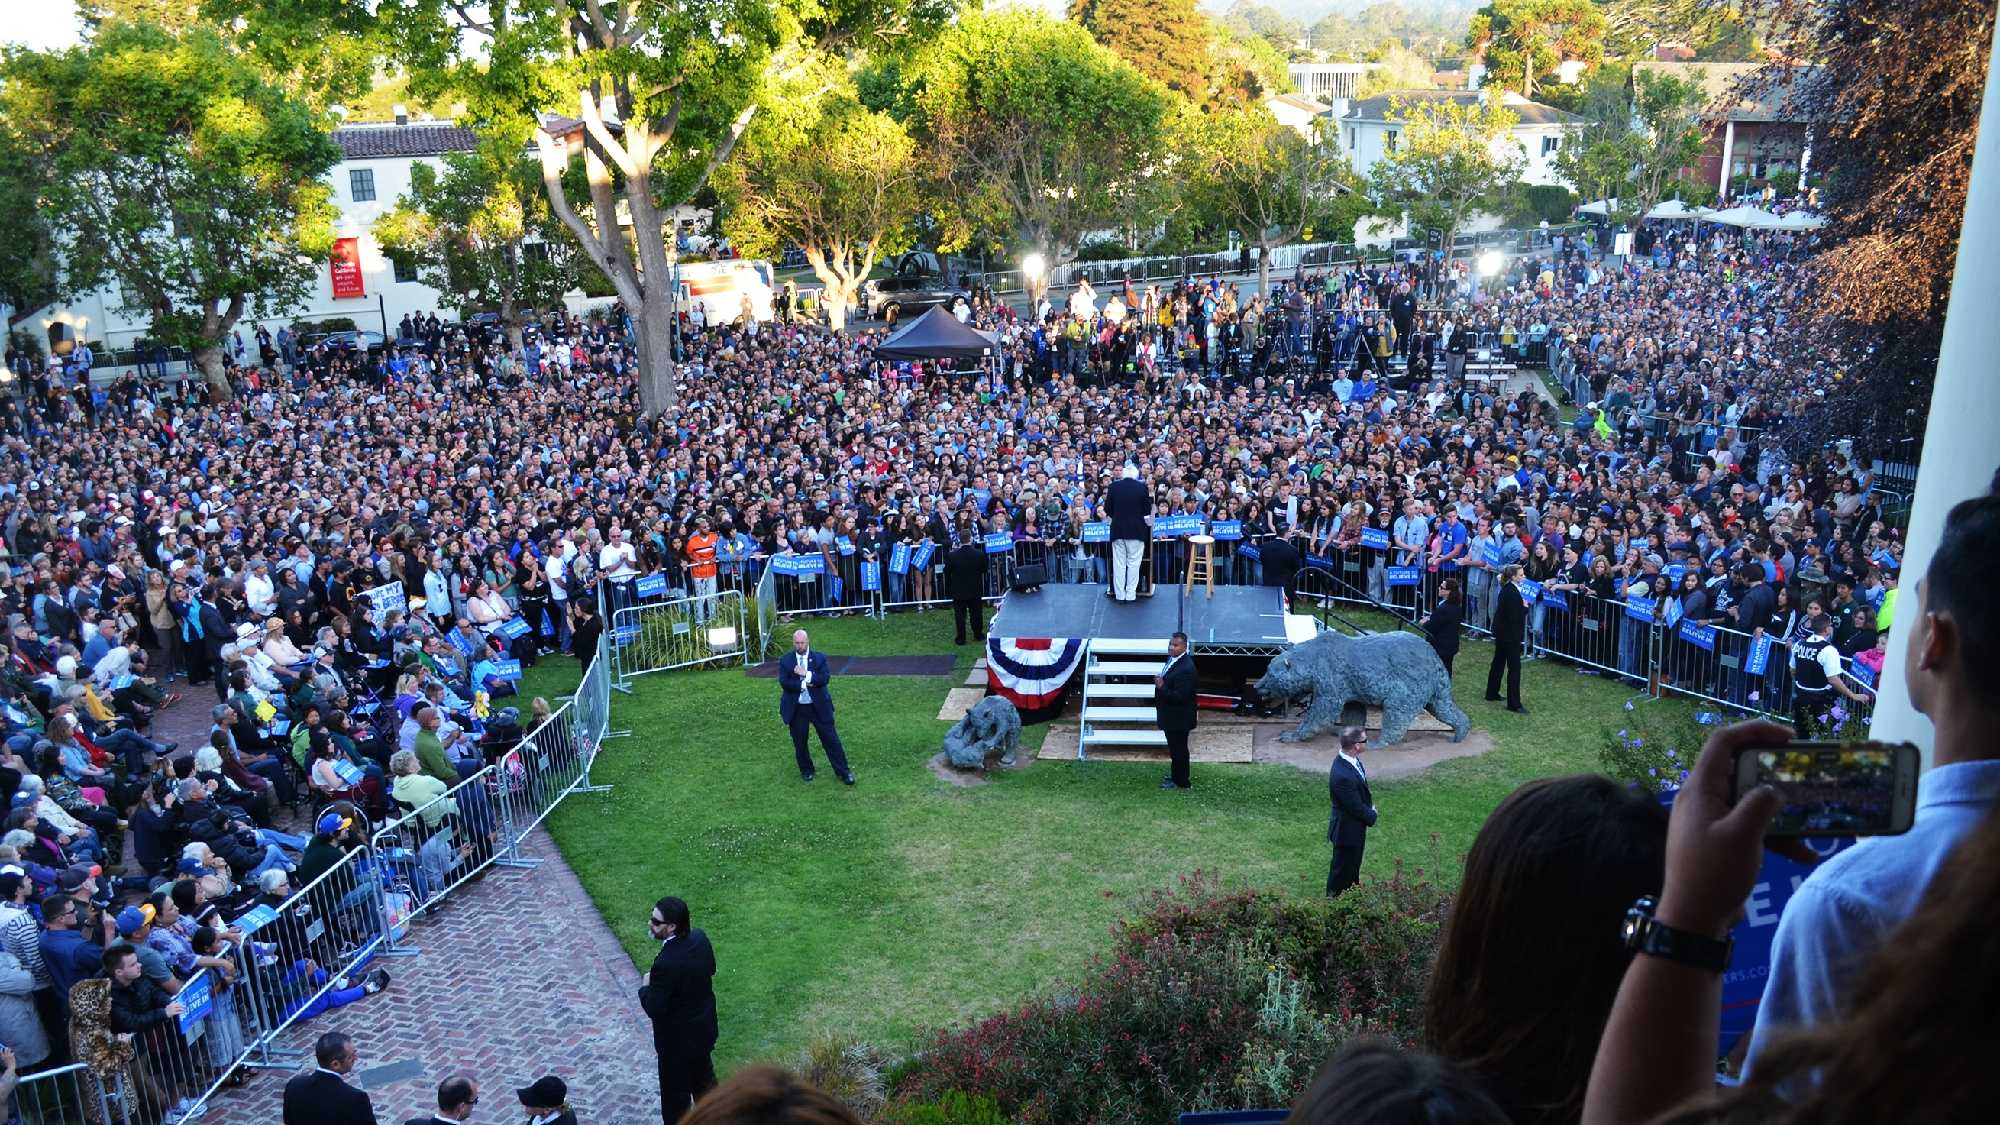 Thousands showed up at Bernie Sanders' rally in Monterey.